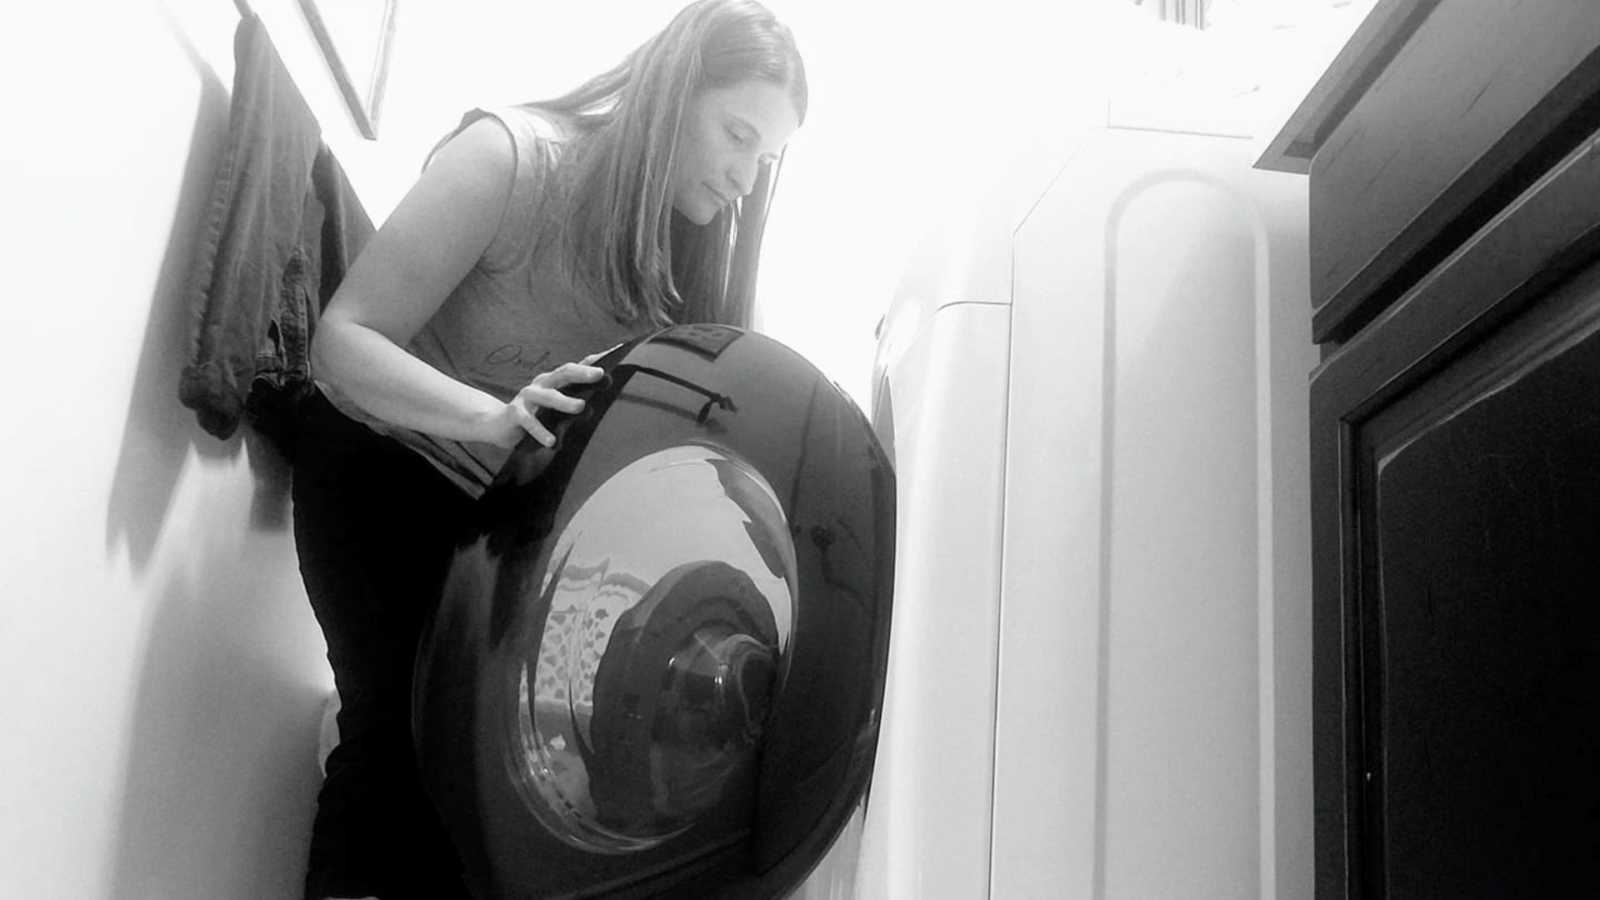 Mom snaps a photo while she finishes loading the laundry by herself